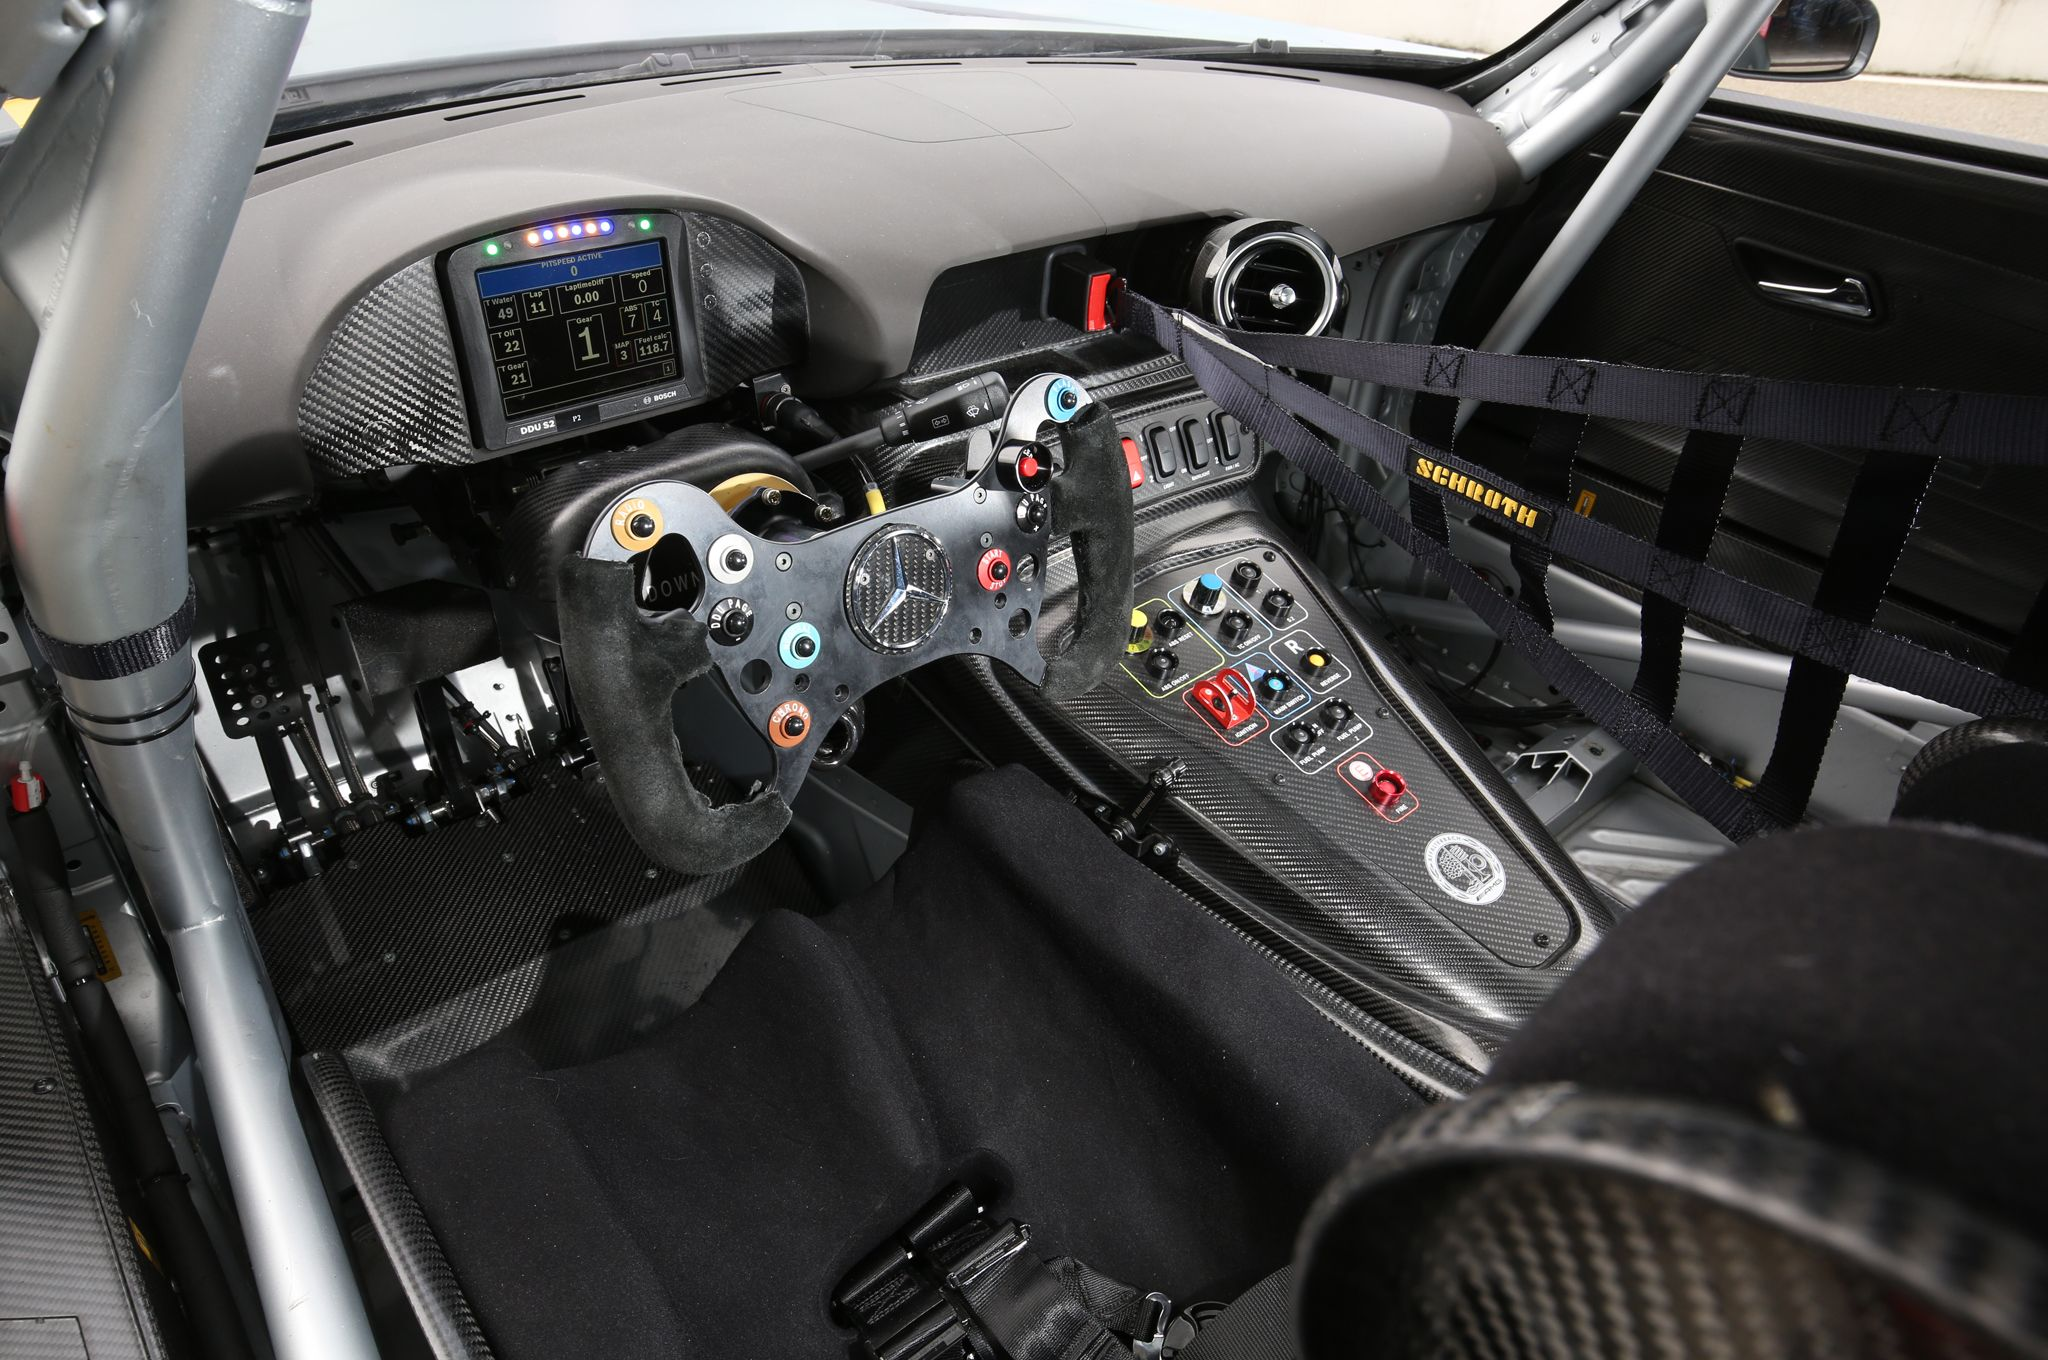 Mercedes Amg Gt3 Race Car Review Randy Pobst Drives Amg S Latest